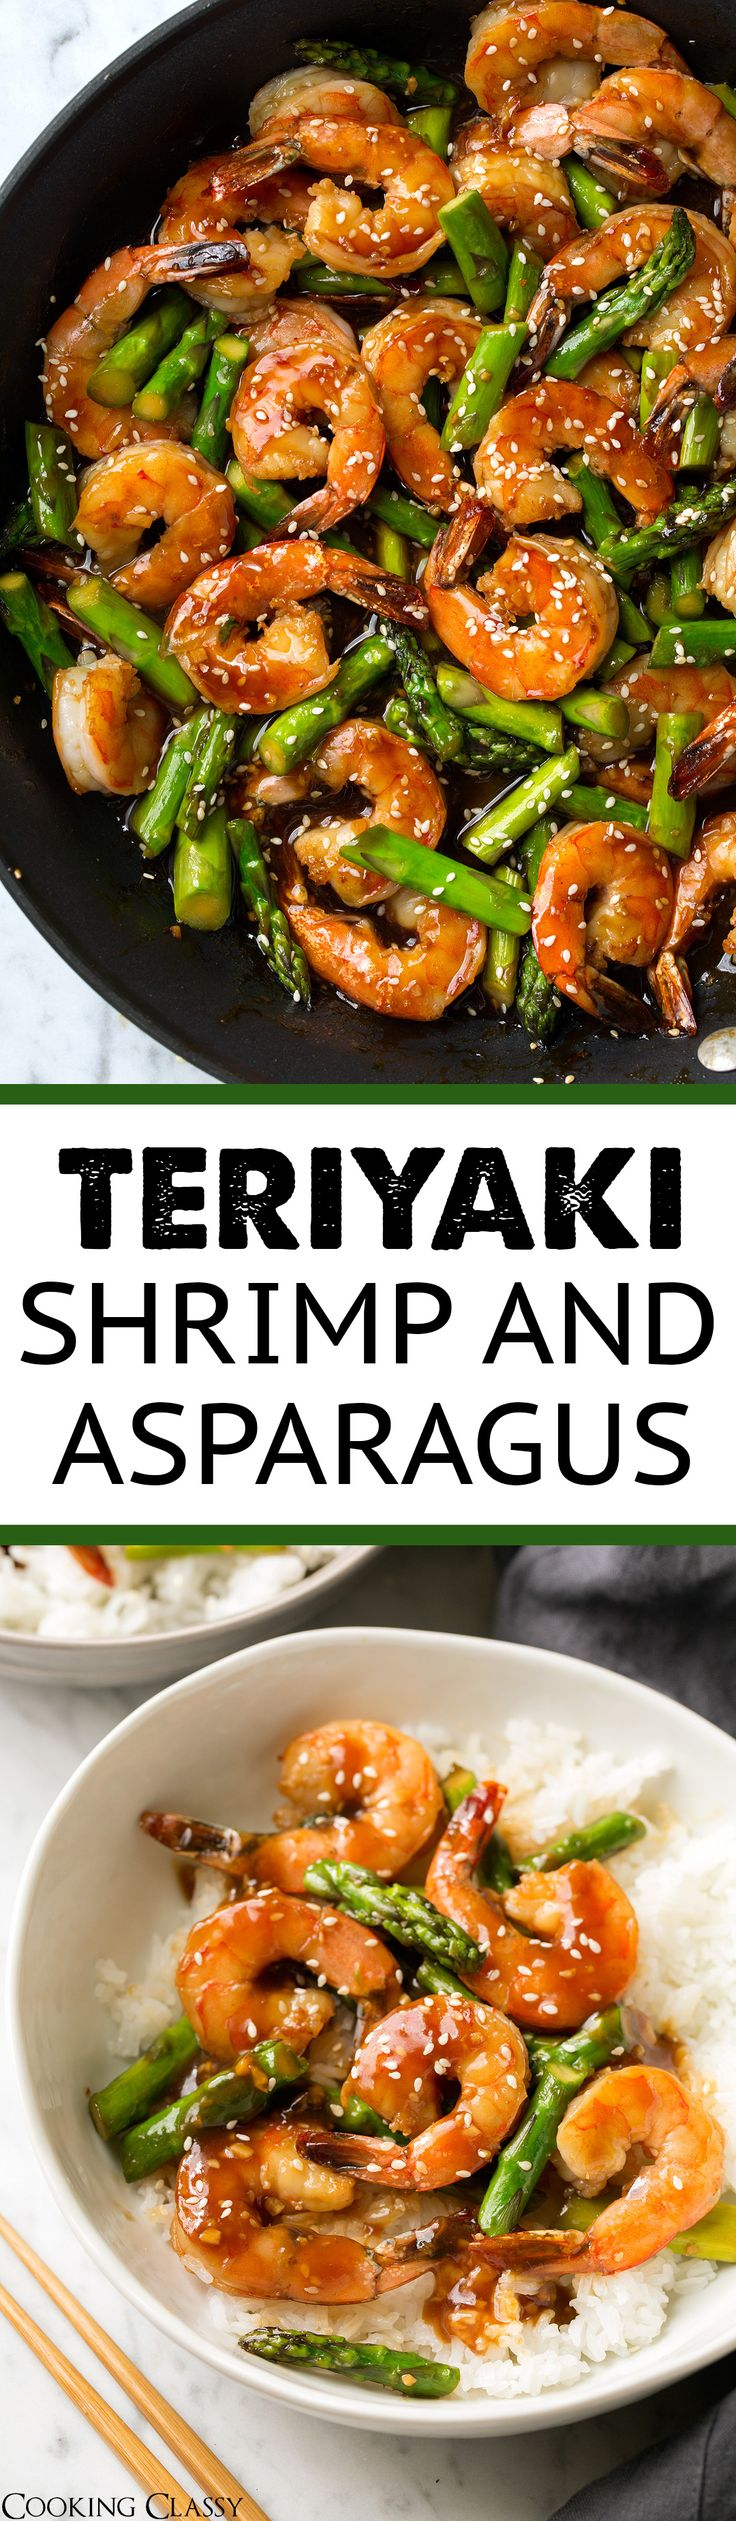 Teriyaki Shrimp and Asparagus - Cooking Classy